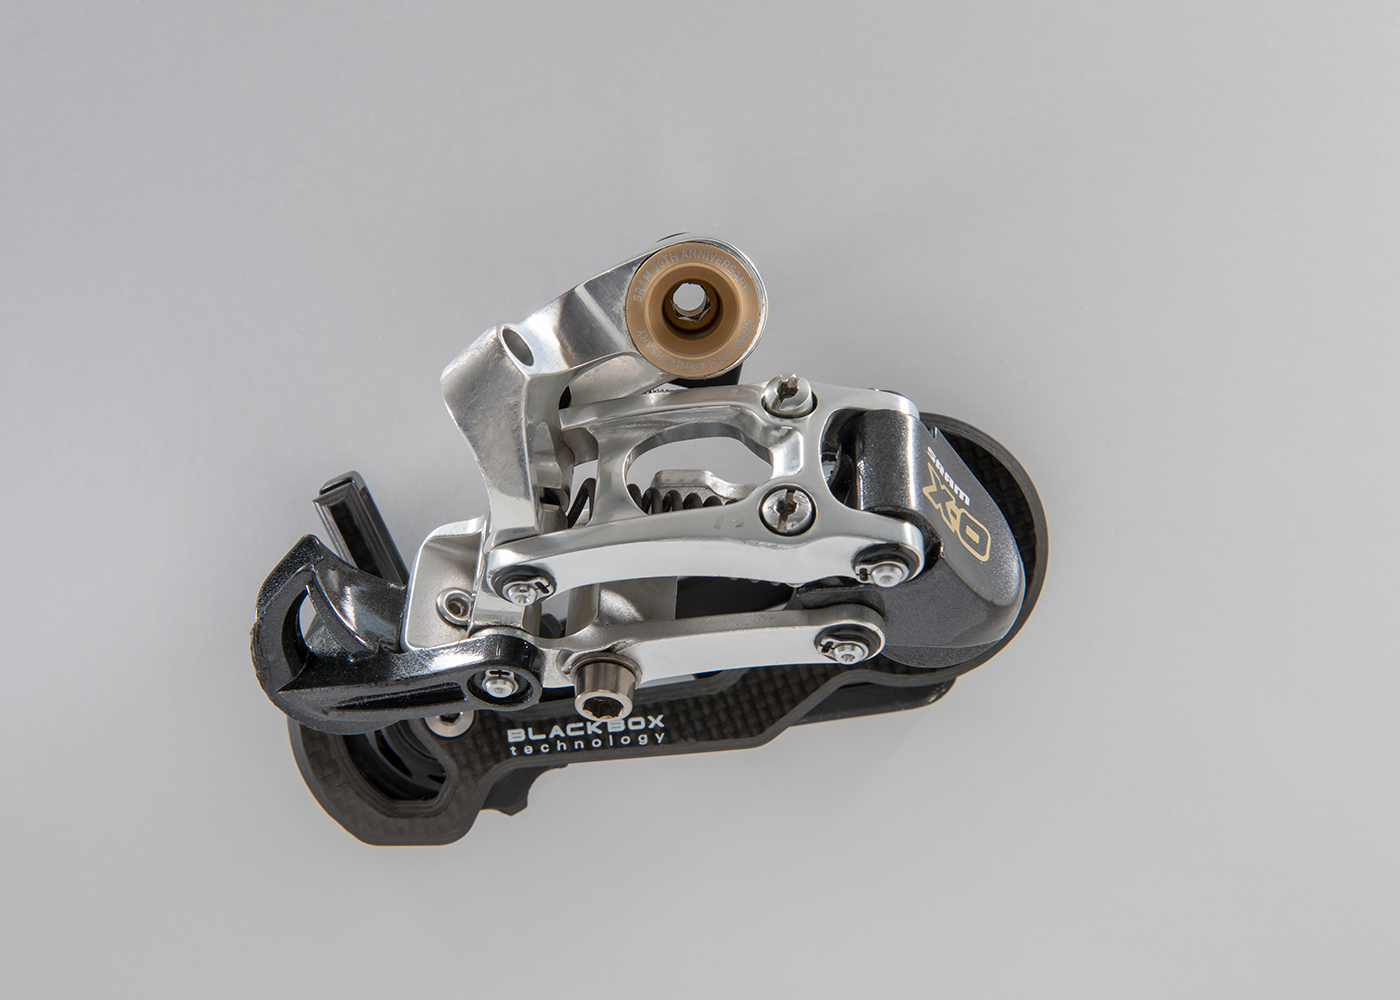 SRAM XO 20th Anniversary  It was introduced in 2007 to celebrate SRAM's 20th anniversary.